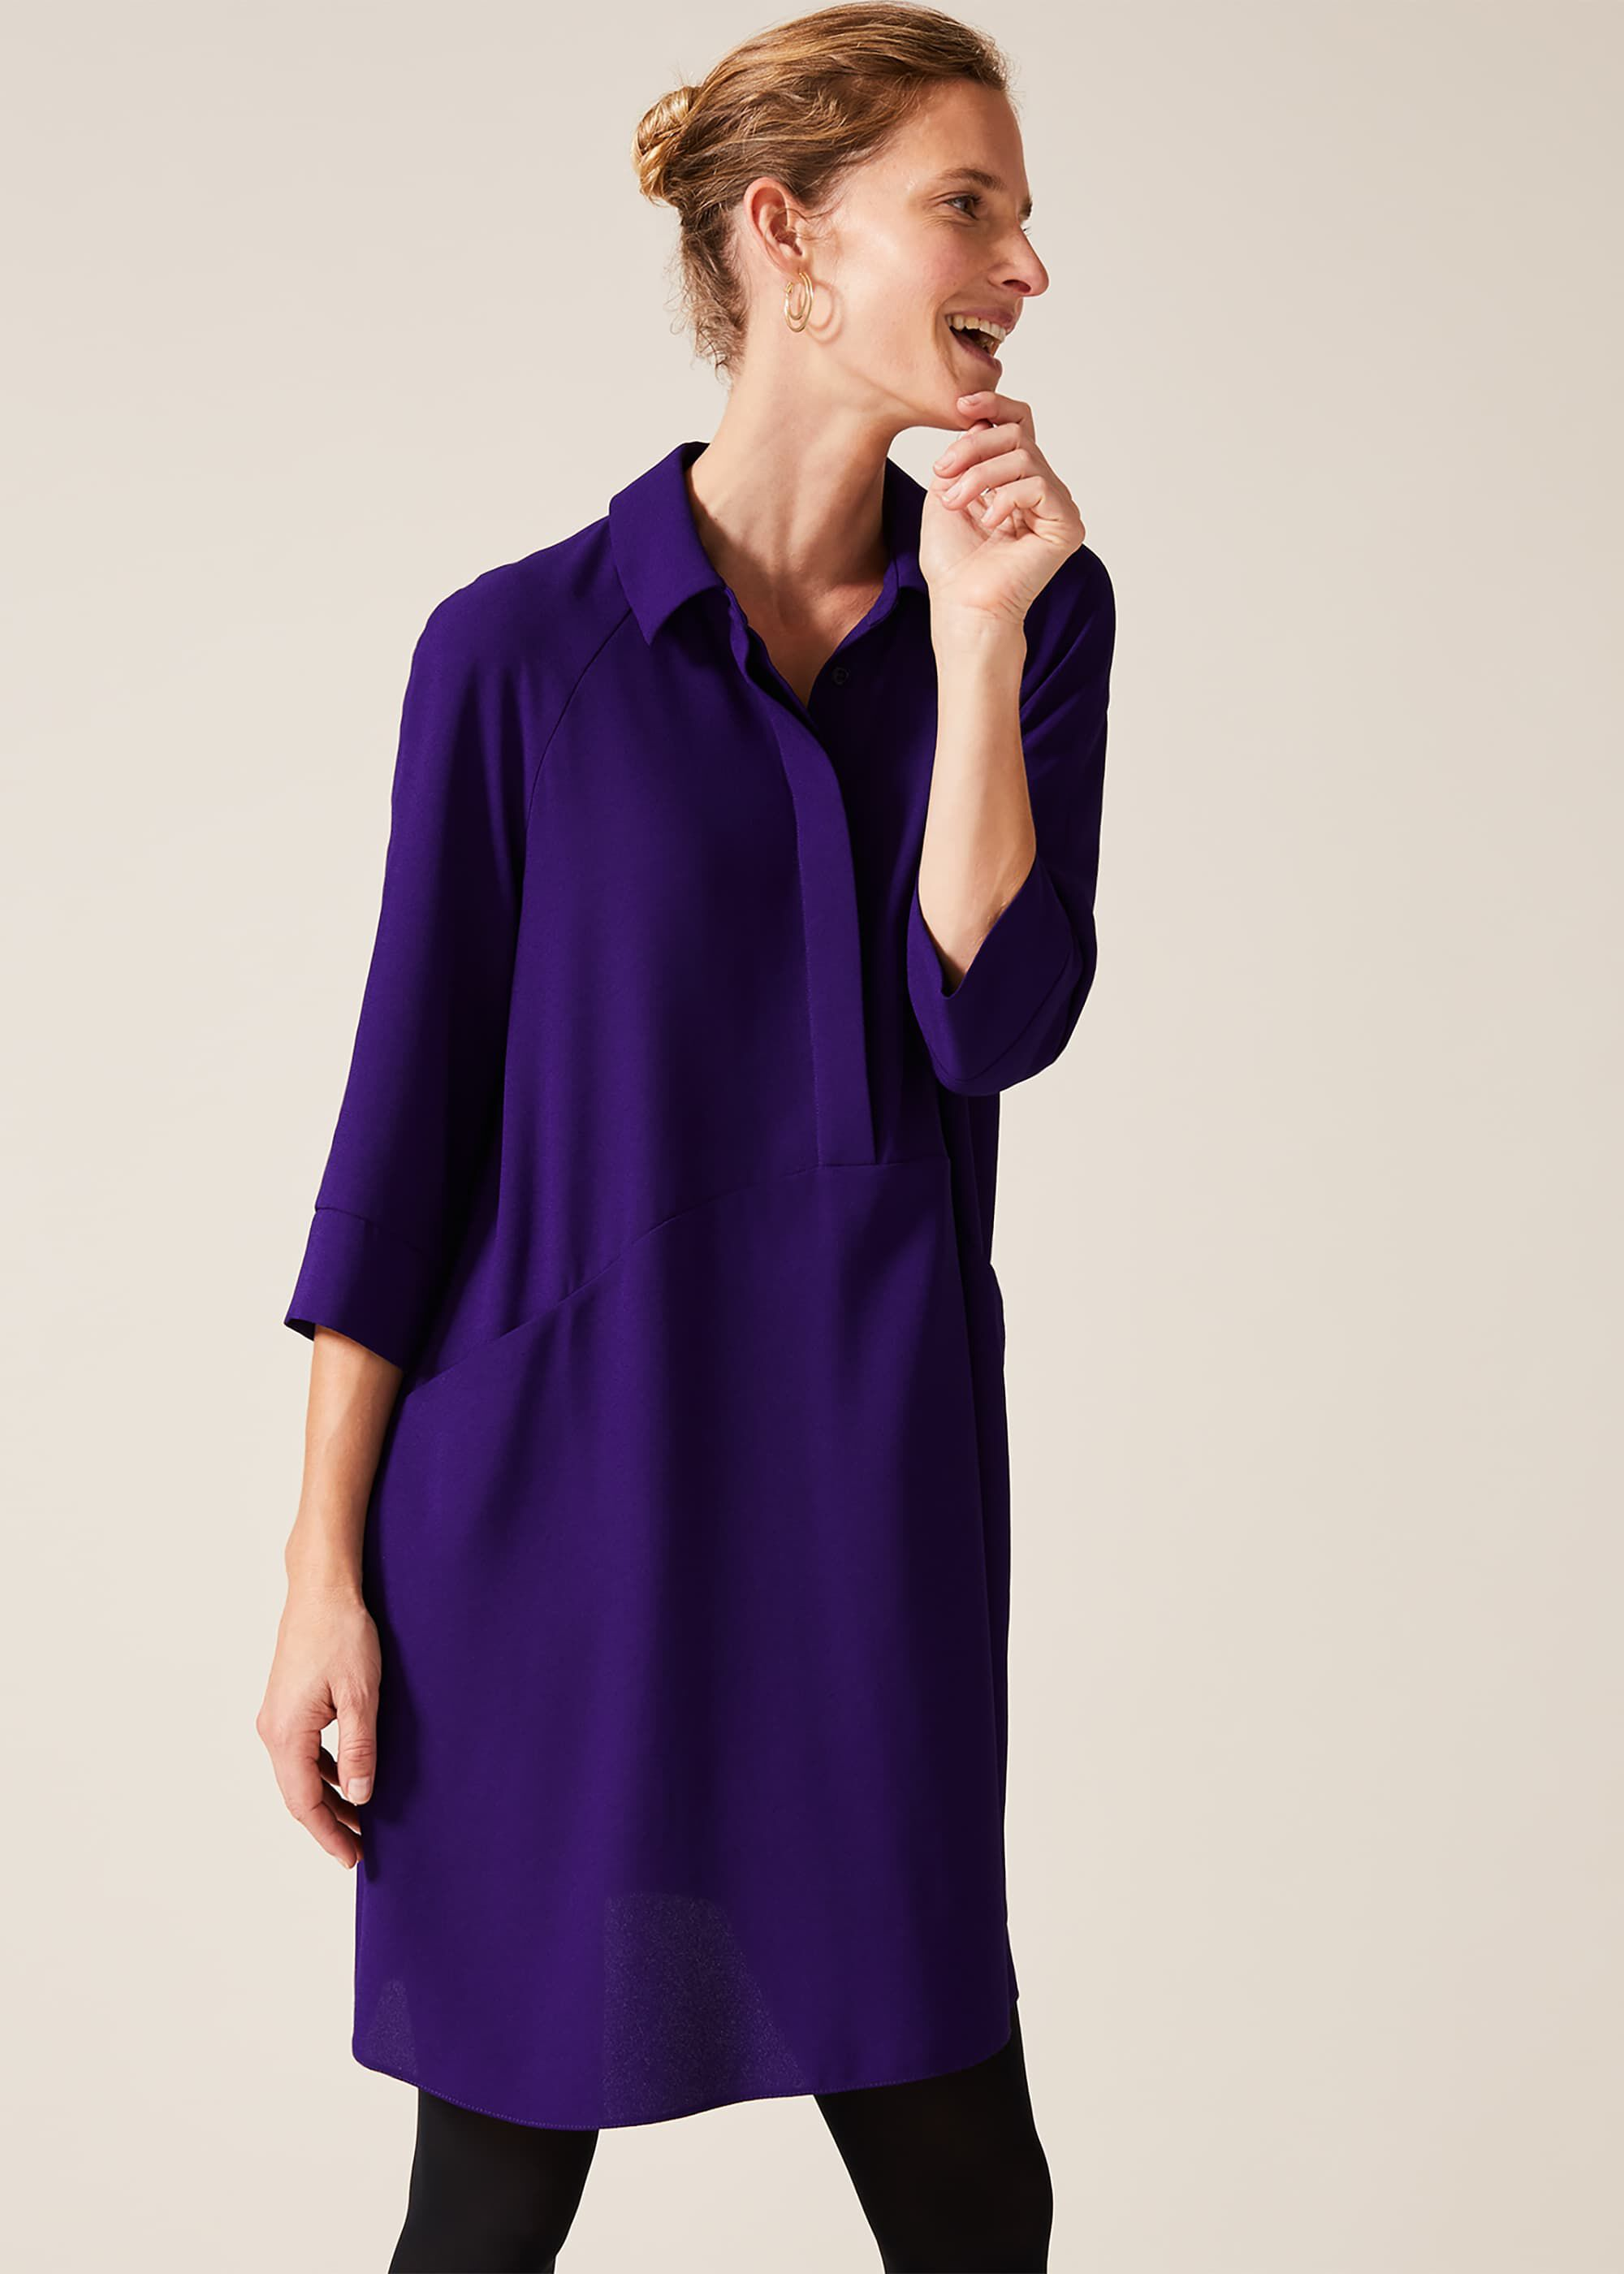 Phase Eight Bella Swing Dress, Purple, Shirt